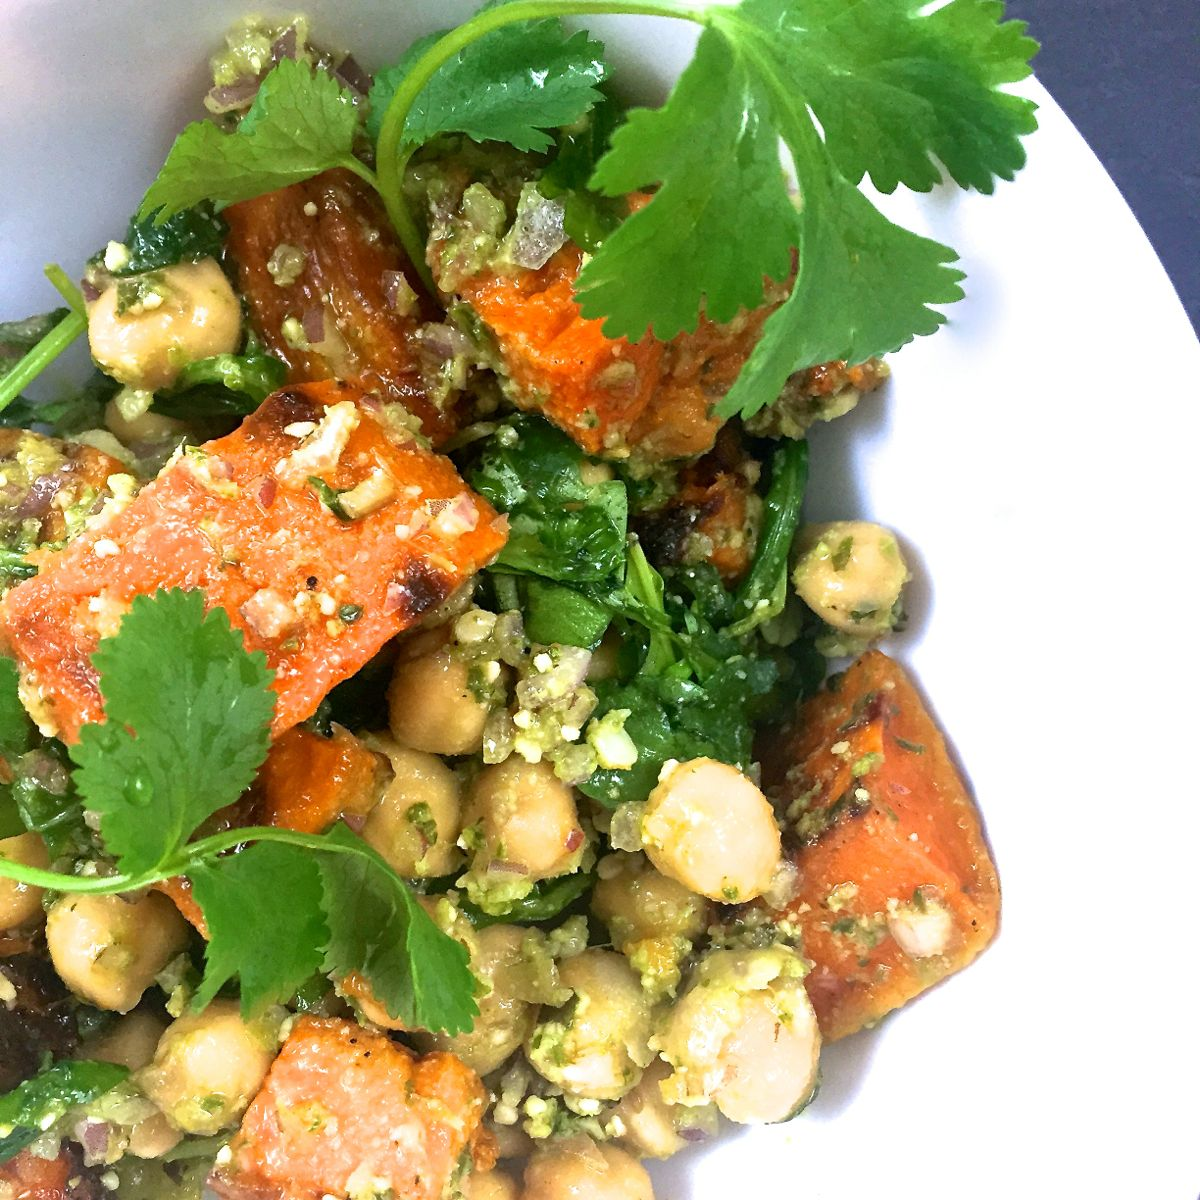 roasted butternut squash and chickpea salad :: by radish*rose